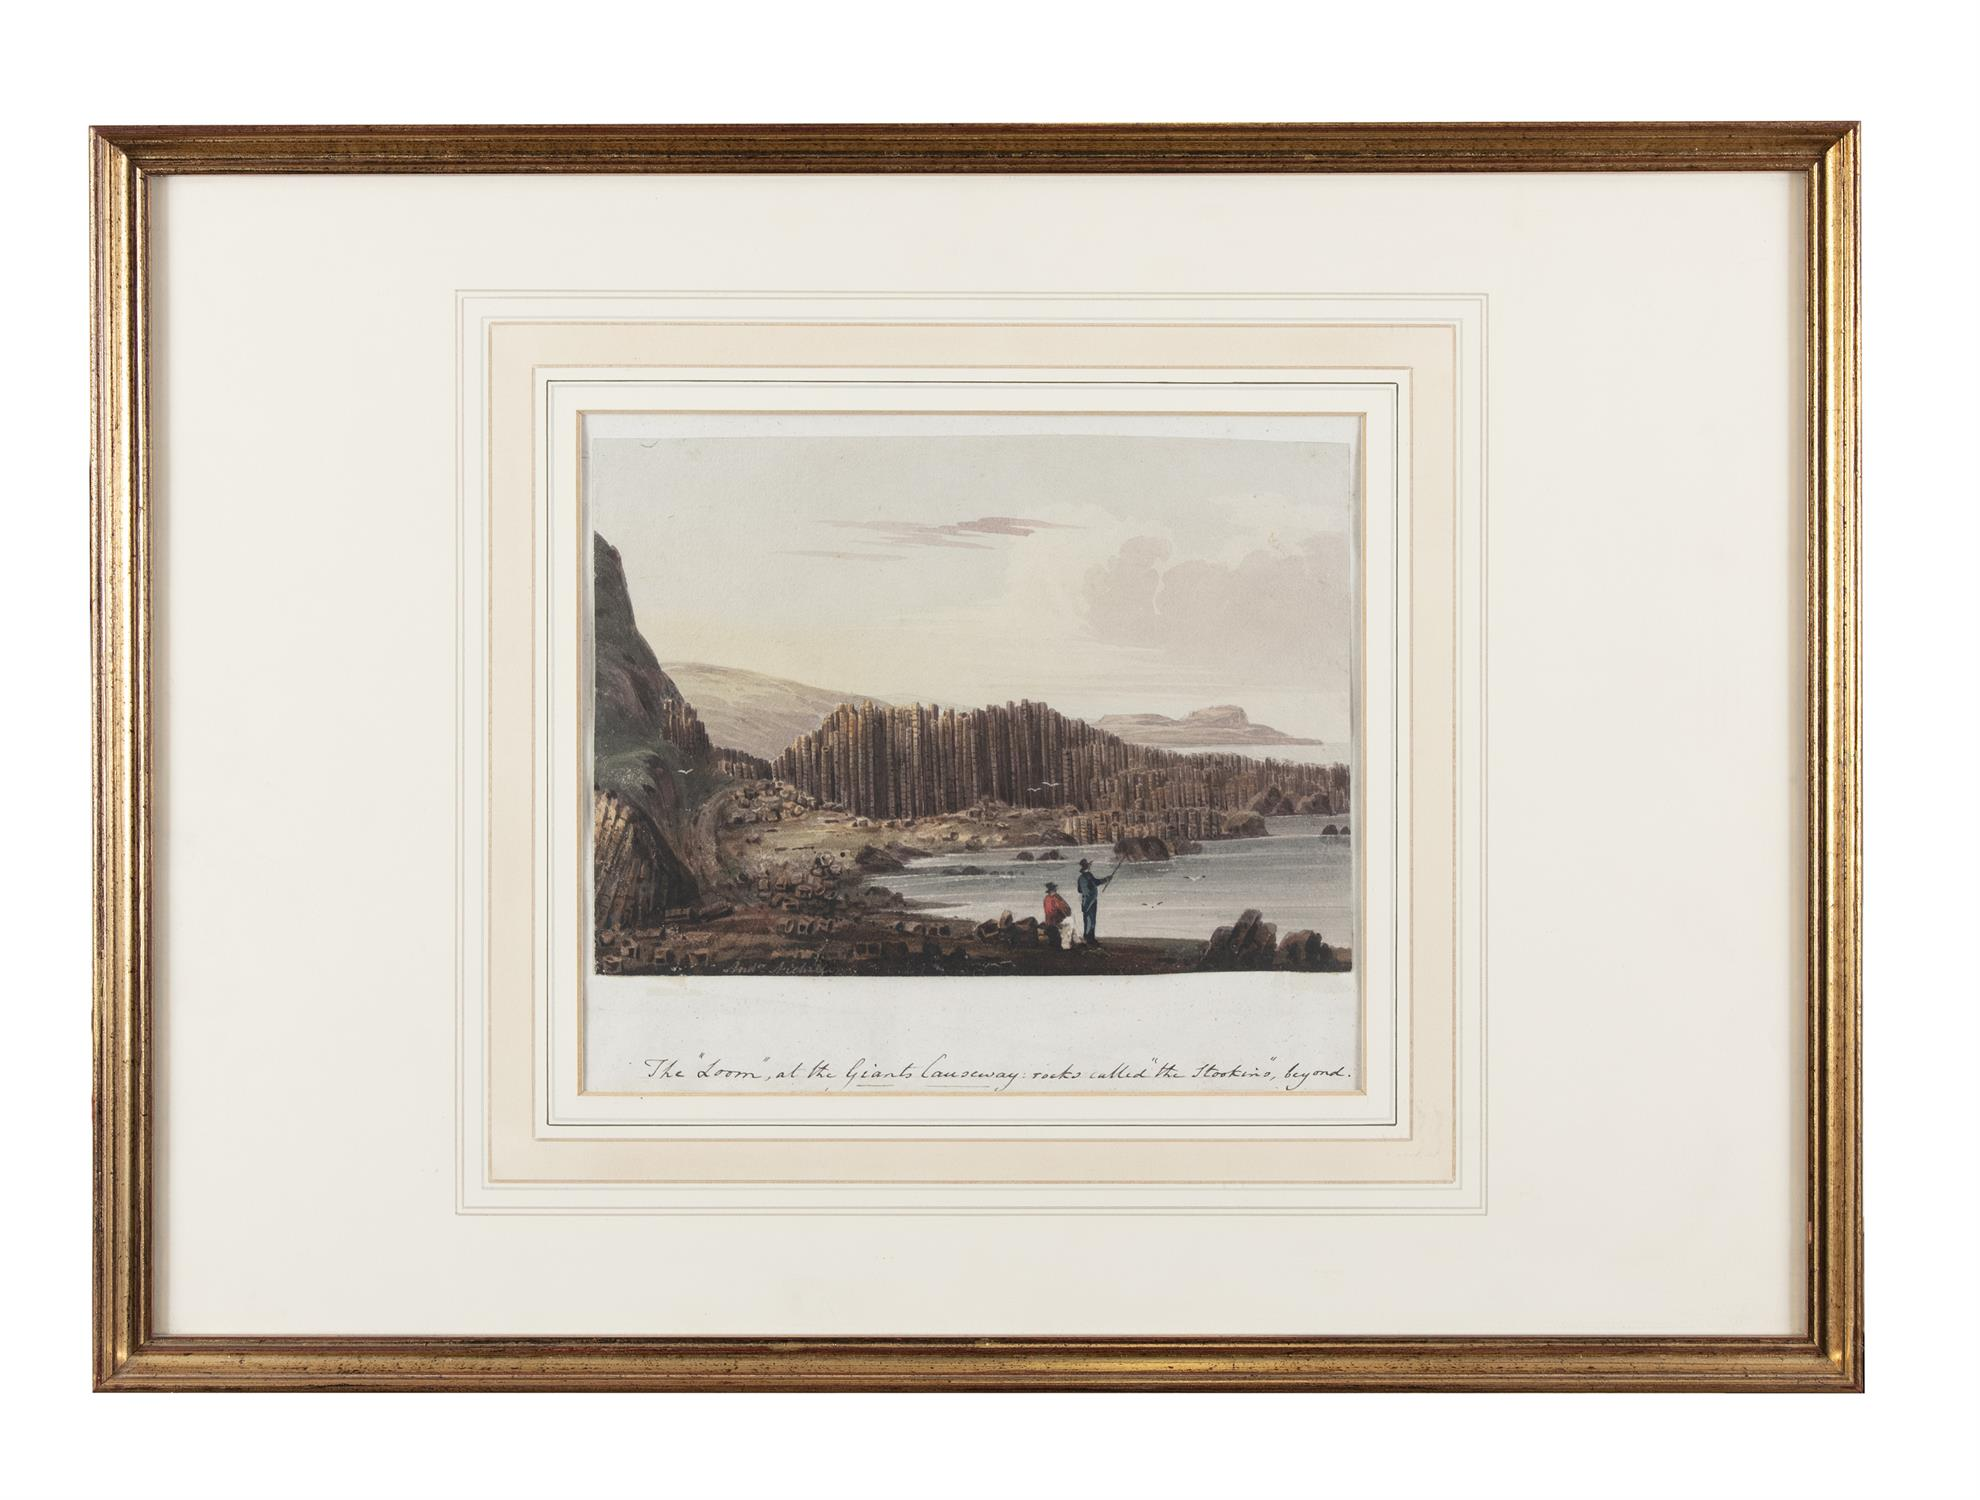 Andrew Nicholl RHA (1804-1886) The 'Loom' at the Giant's Causeway, Rocks called 'The Stookings' - Image 2 of 4